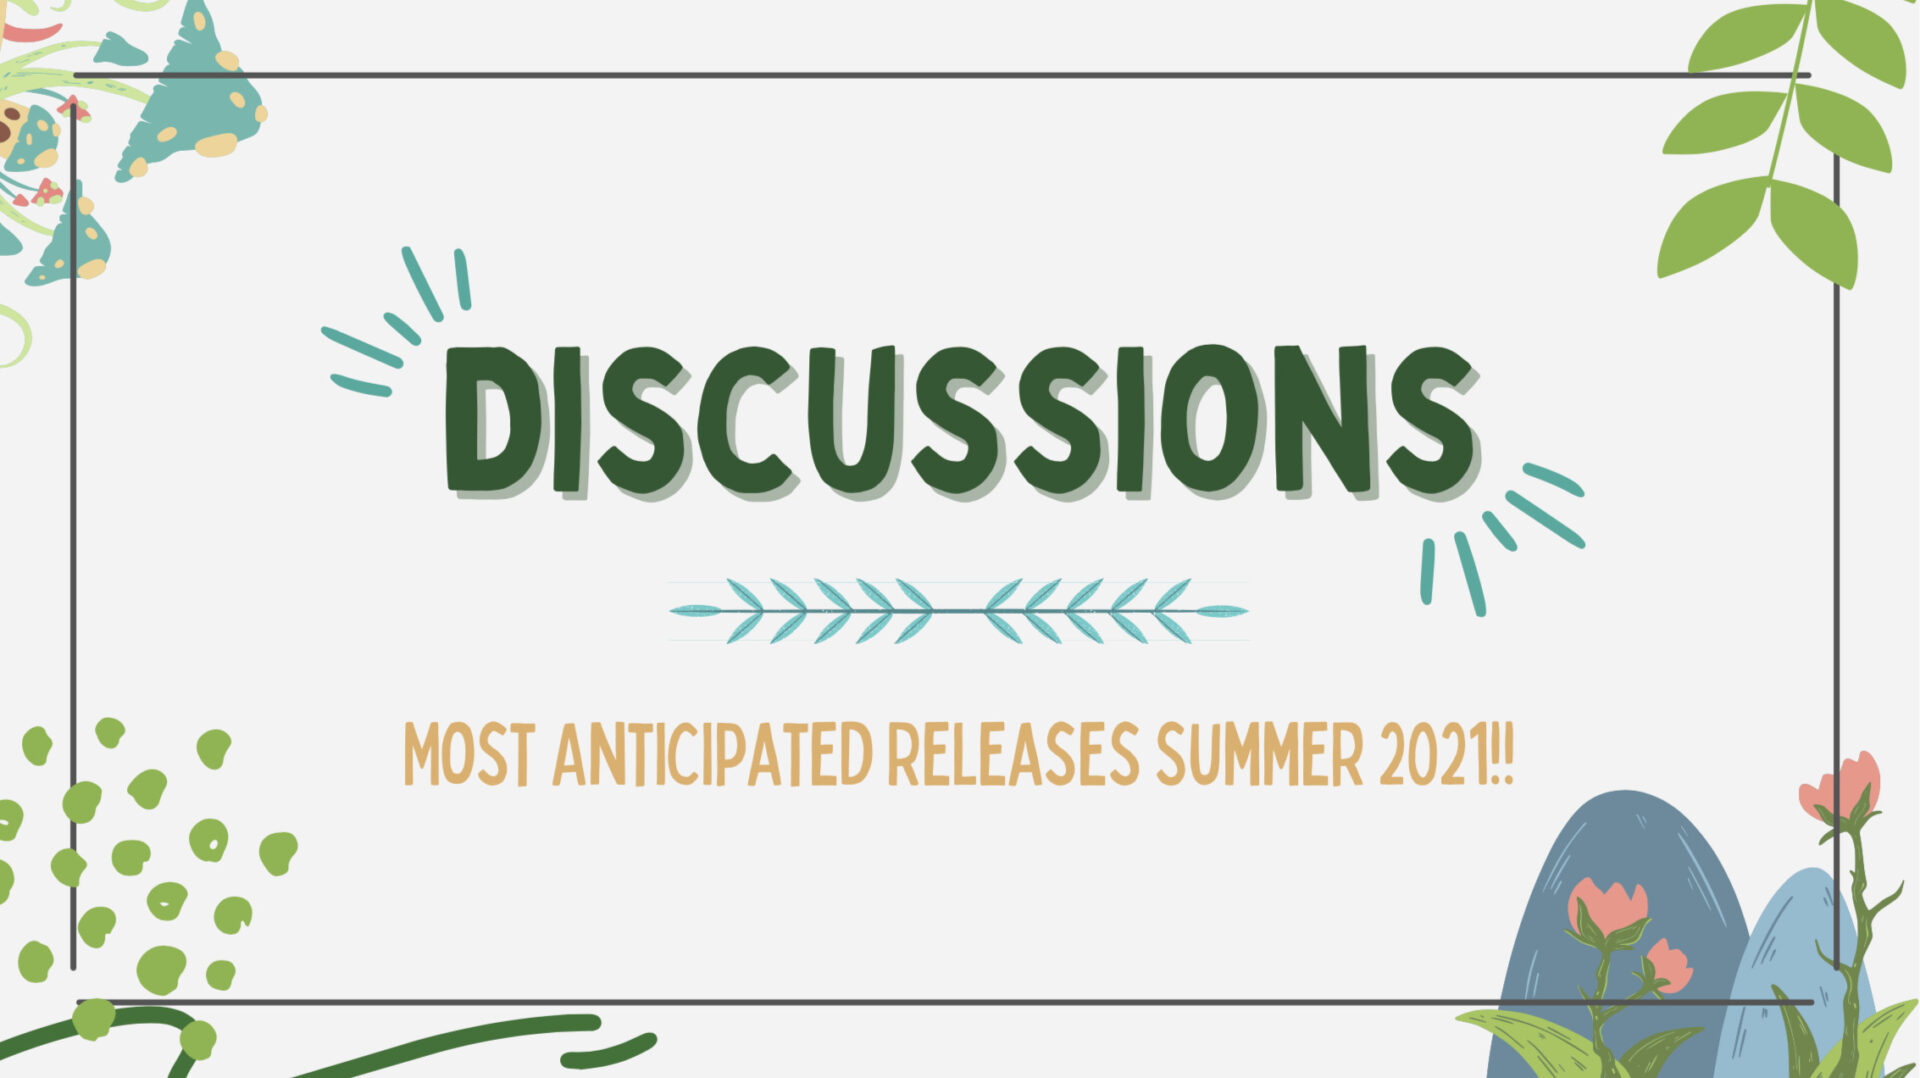 Most Anticipated Releases Summer 2021